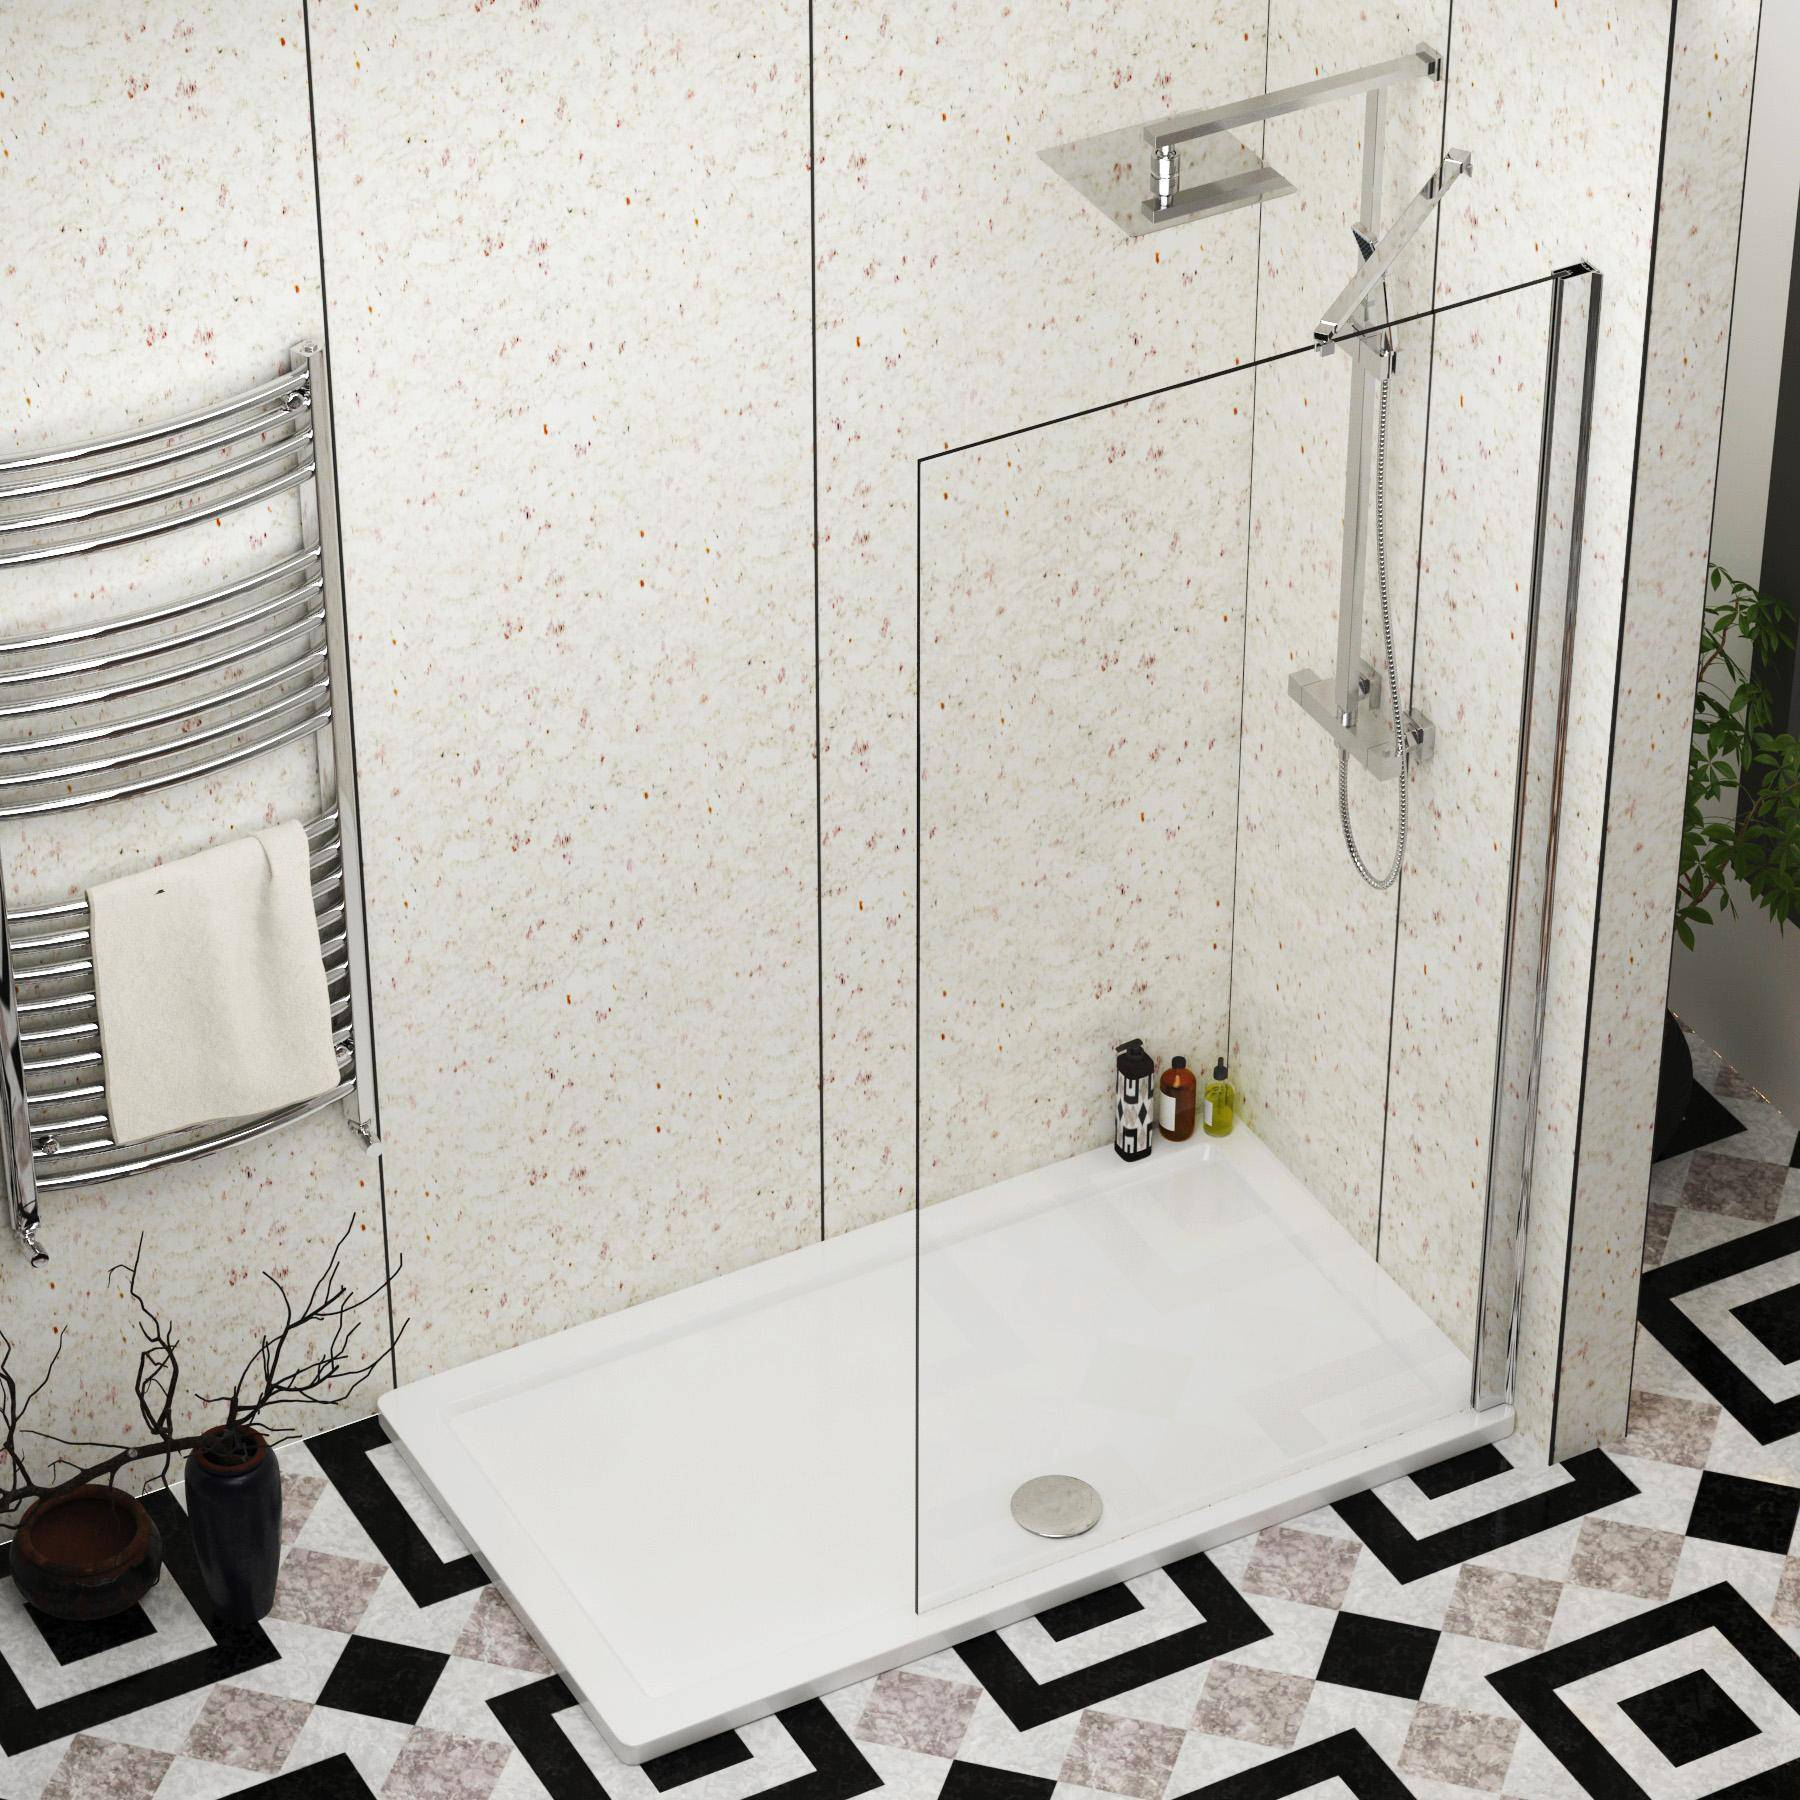 Royal Bathrooms Marbella 1100mm Walk In Wet Room Shower Screen with Pearlston Tray 1700x800mm - Easy Clean